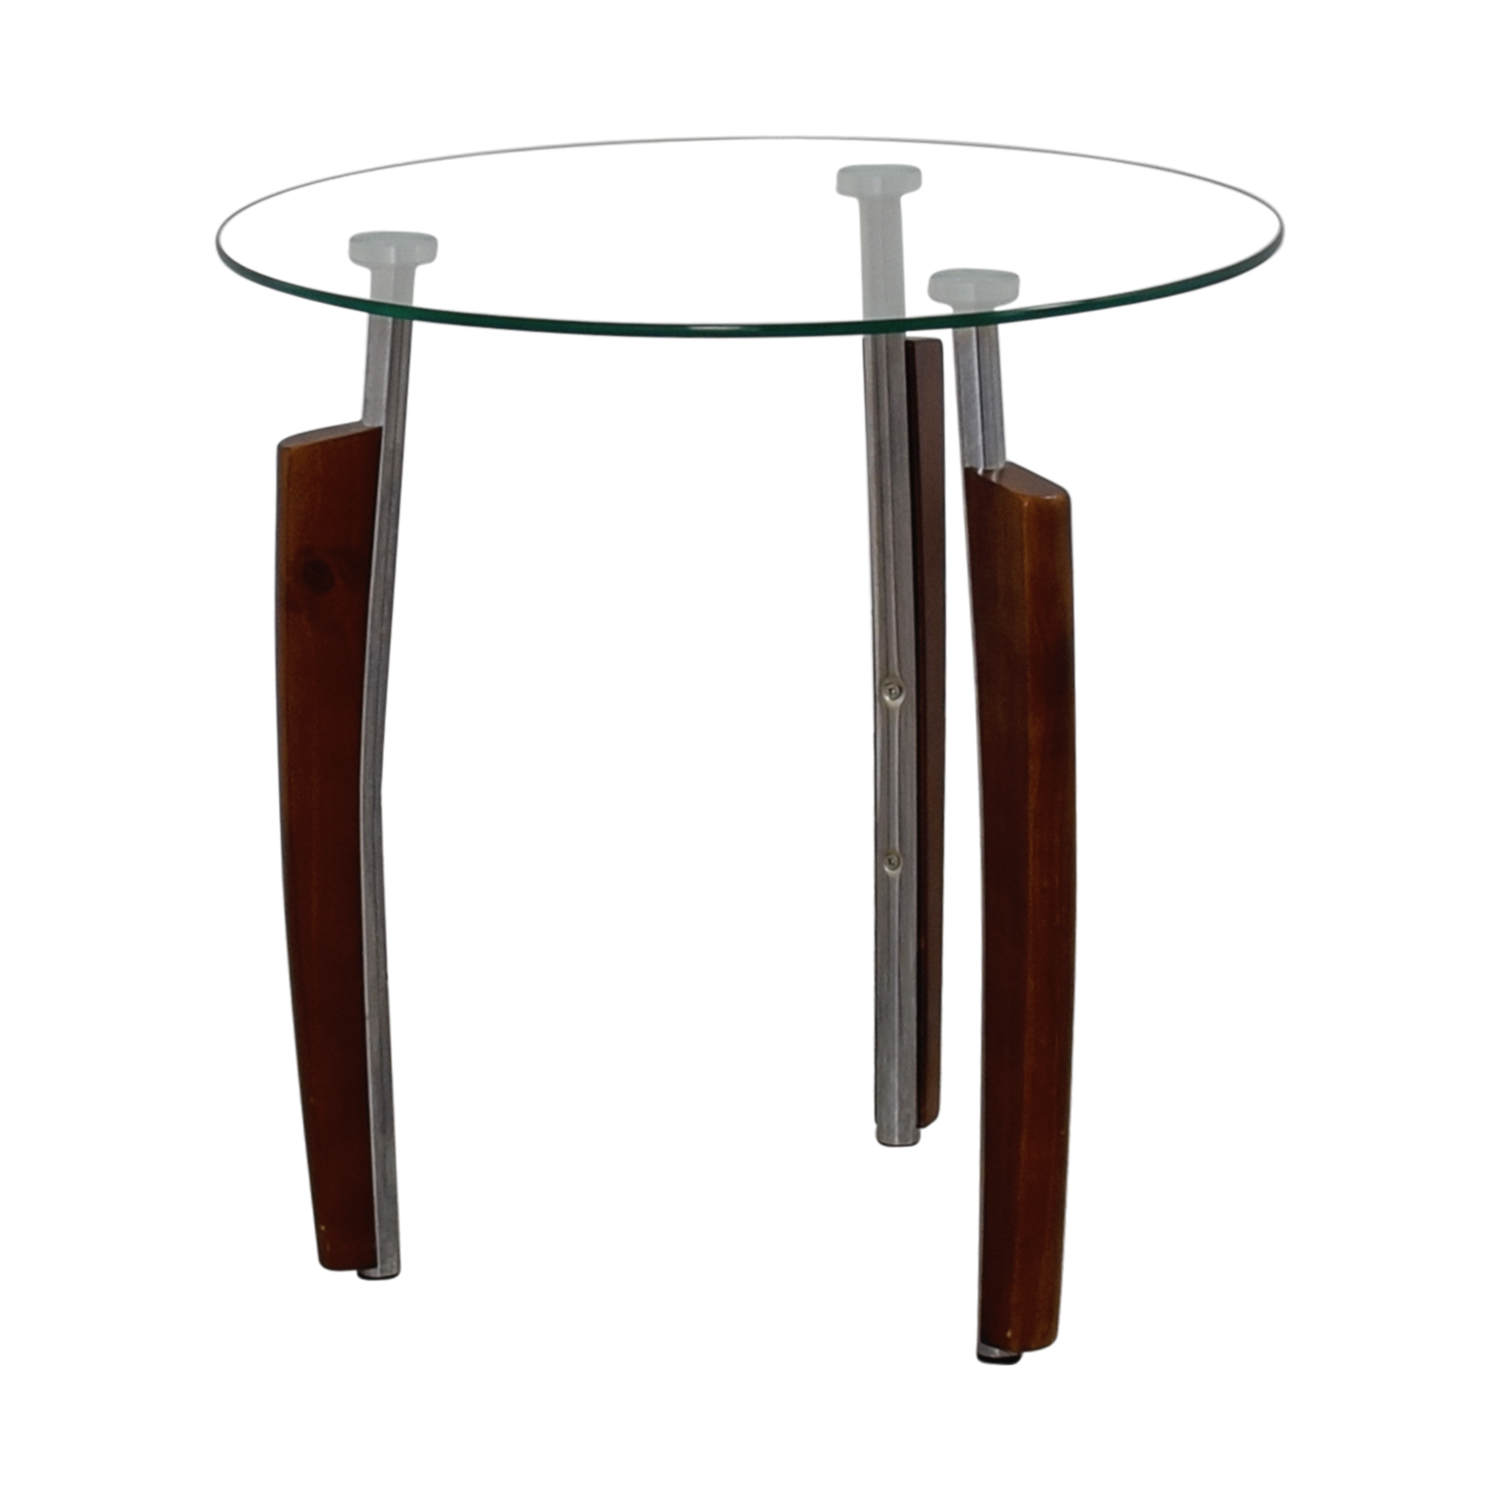 Glass Wooden Side Tables: Round Glass And Wood Side Table / Tables